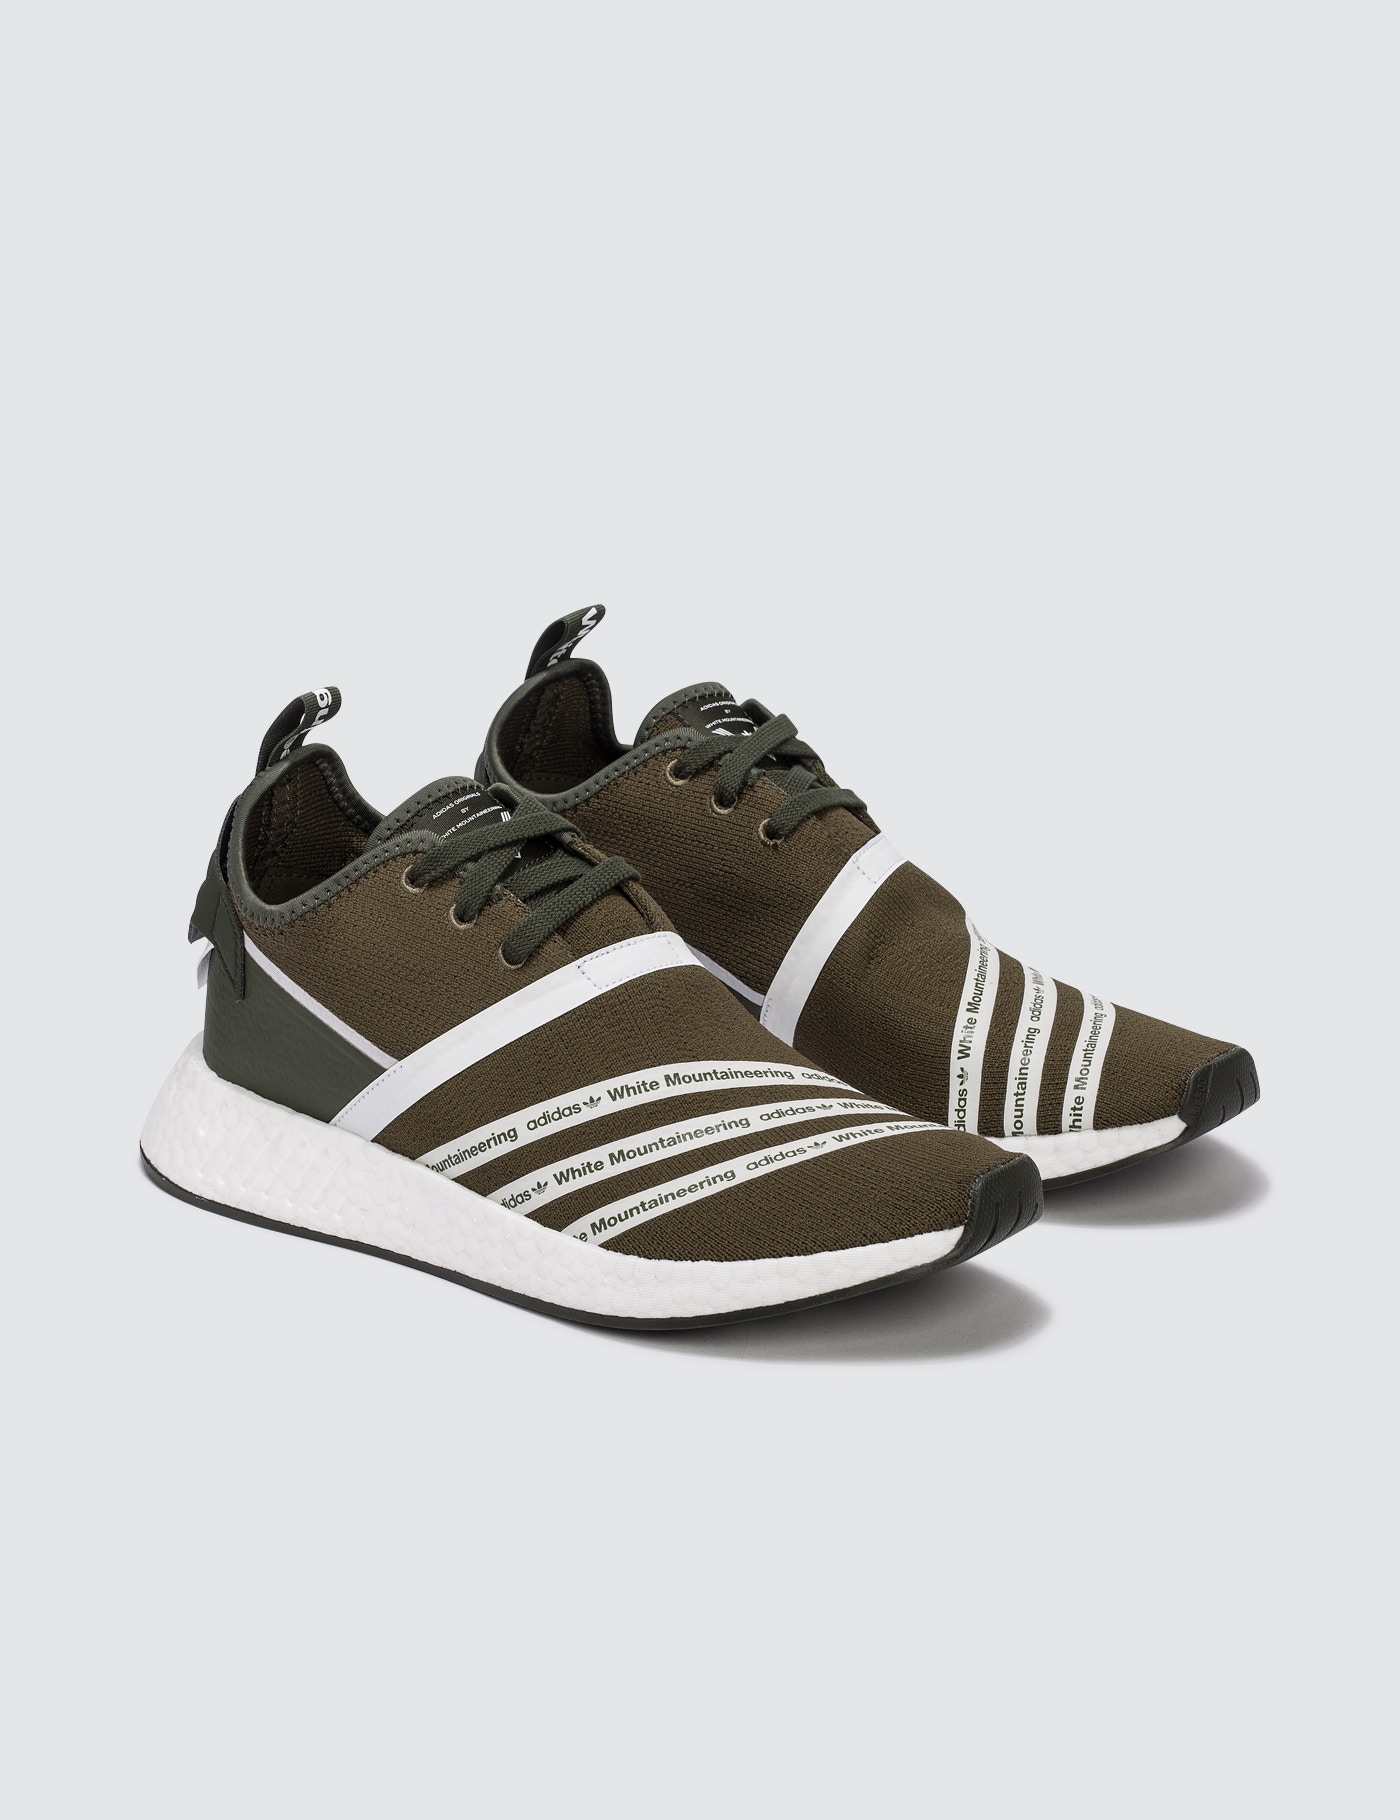 popularna marka Wielka wyprzedaż autentyczny White Mountaineering x adidas Originals WM NMD R2 Runner Primeknit, Adidas  Originals x White Mountaineering